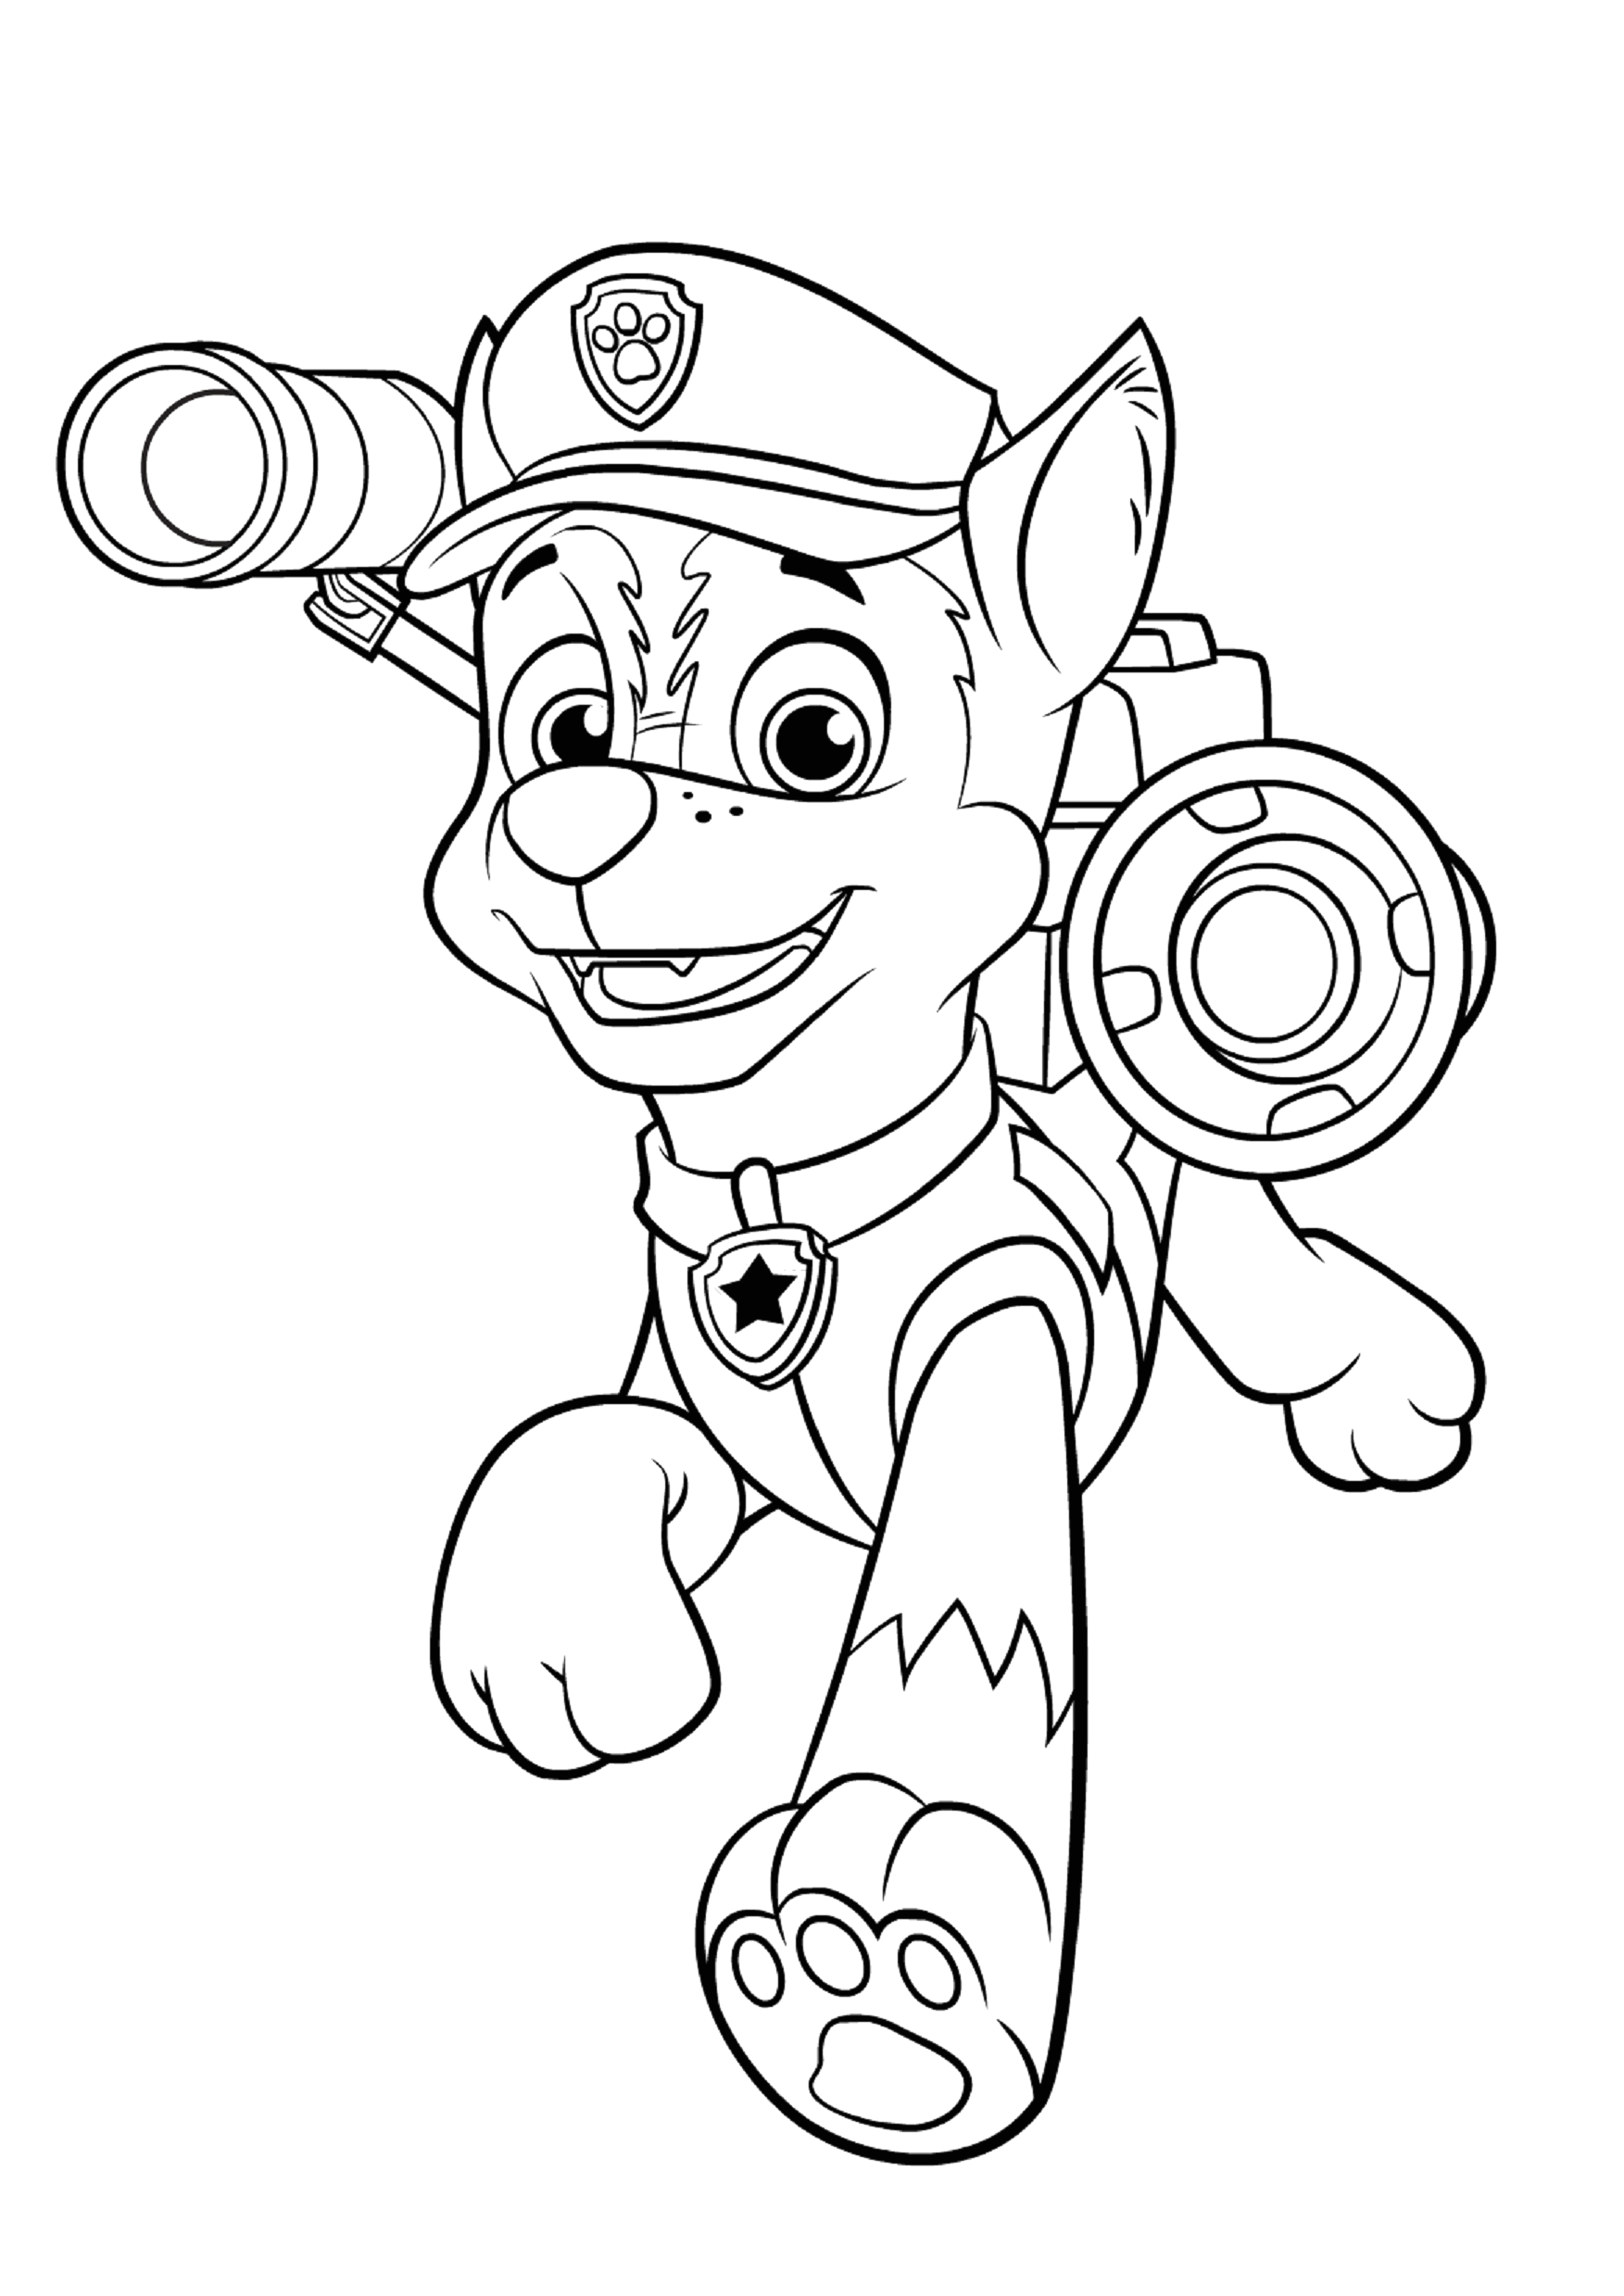 Paw Patrol Chase Coloring Pages to Print Chase Paw Patrol Coloring Pages to and Print for Free